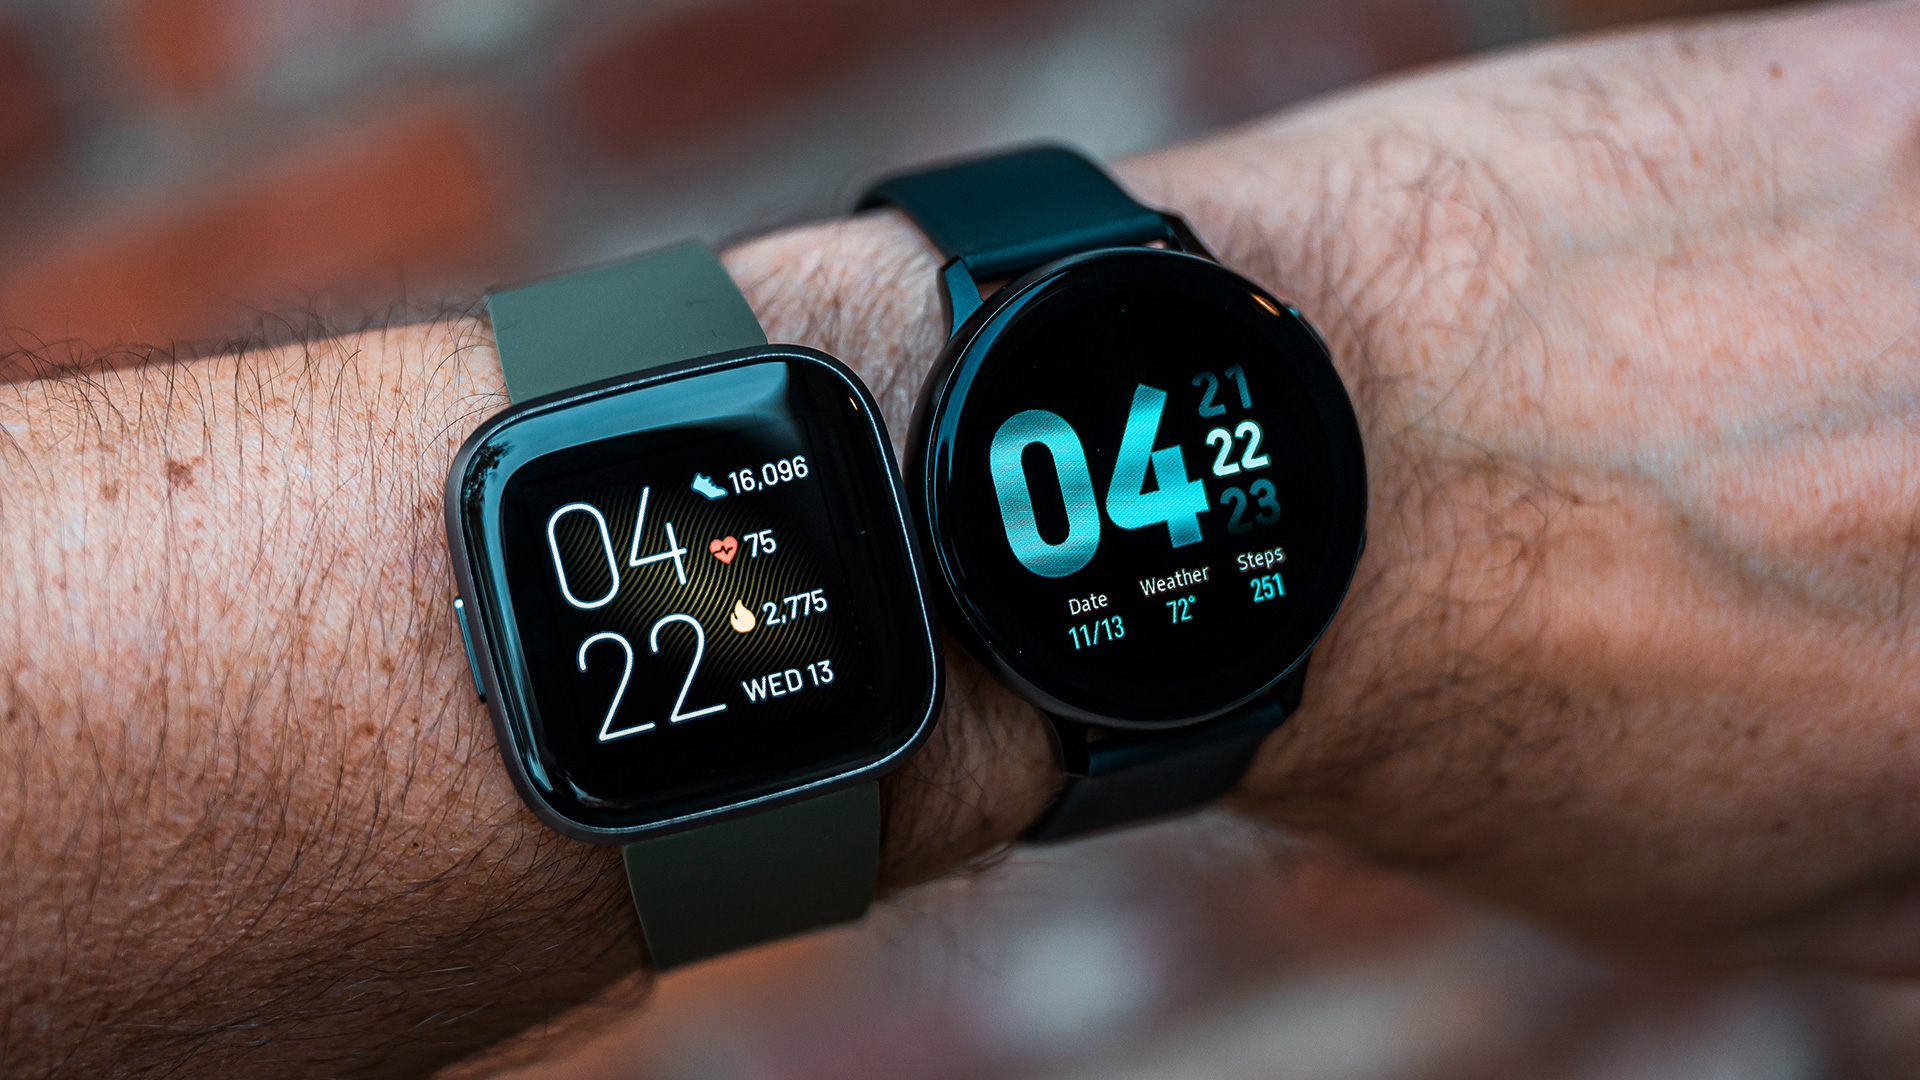 Samsung Watch Active 2 vs Fitbit Versa 2